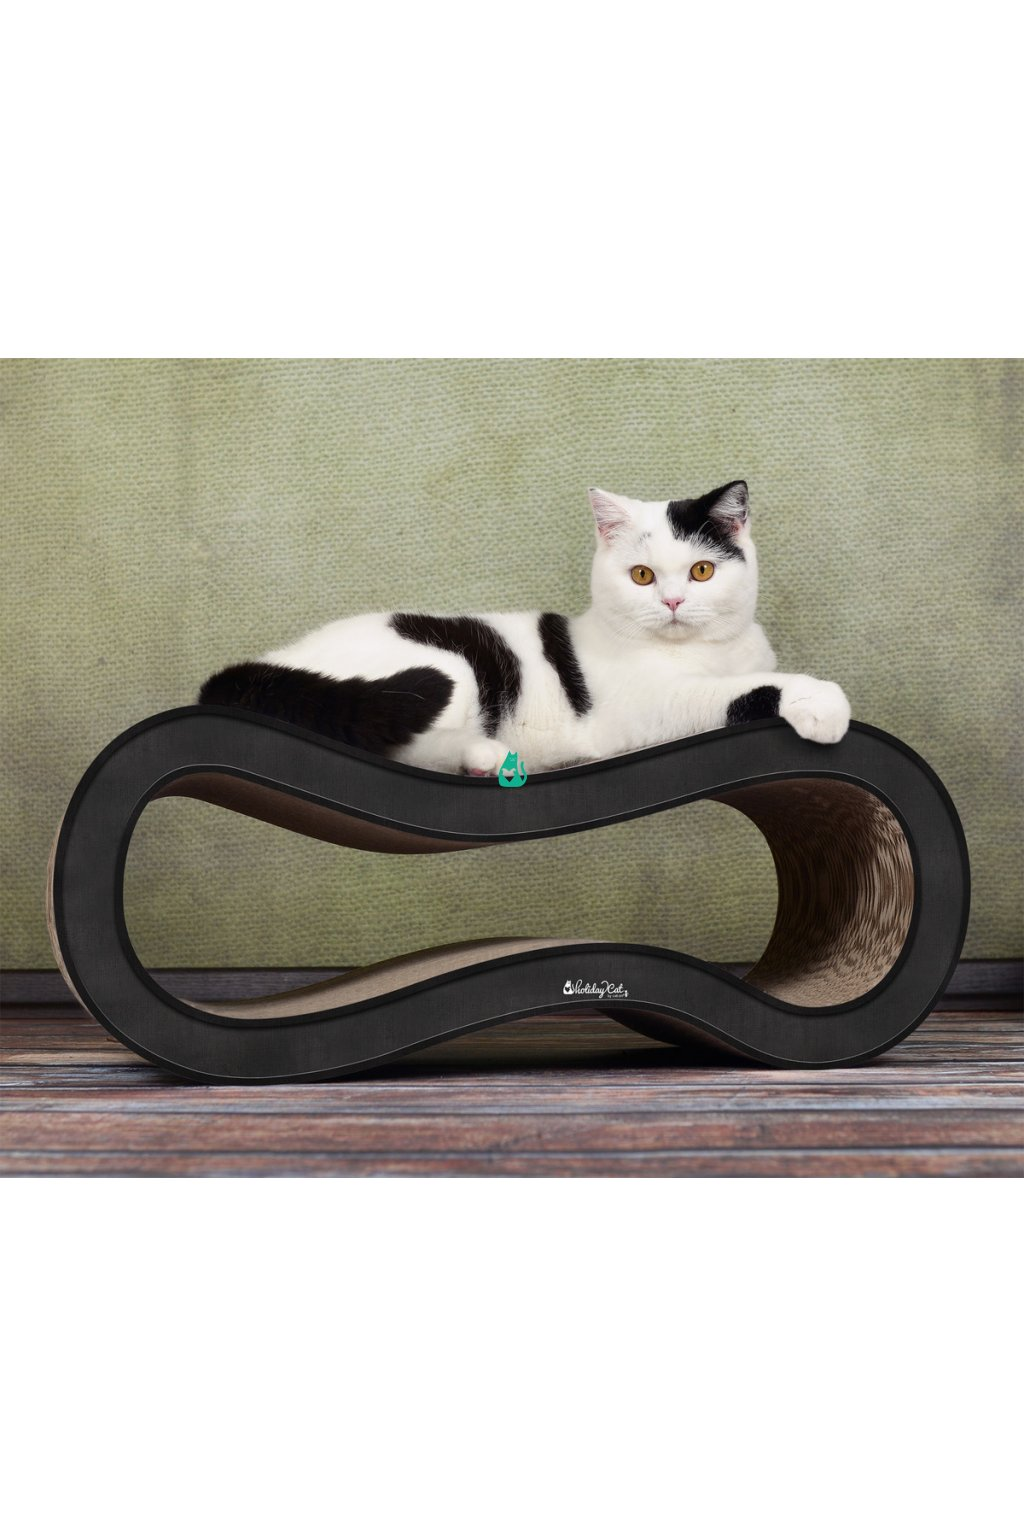 cat on singha m cat scratcher holidaycat black